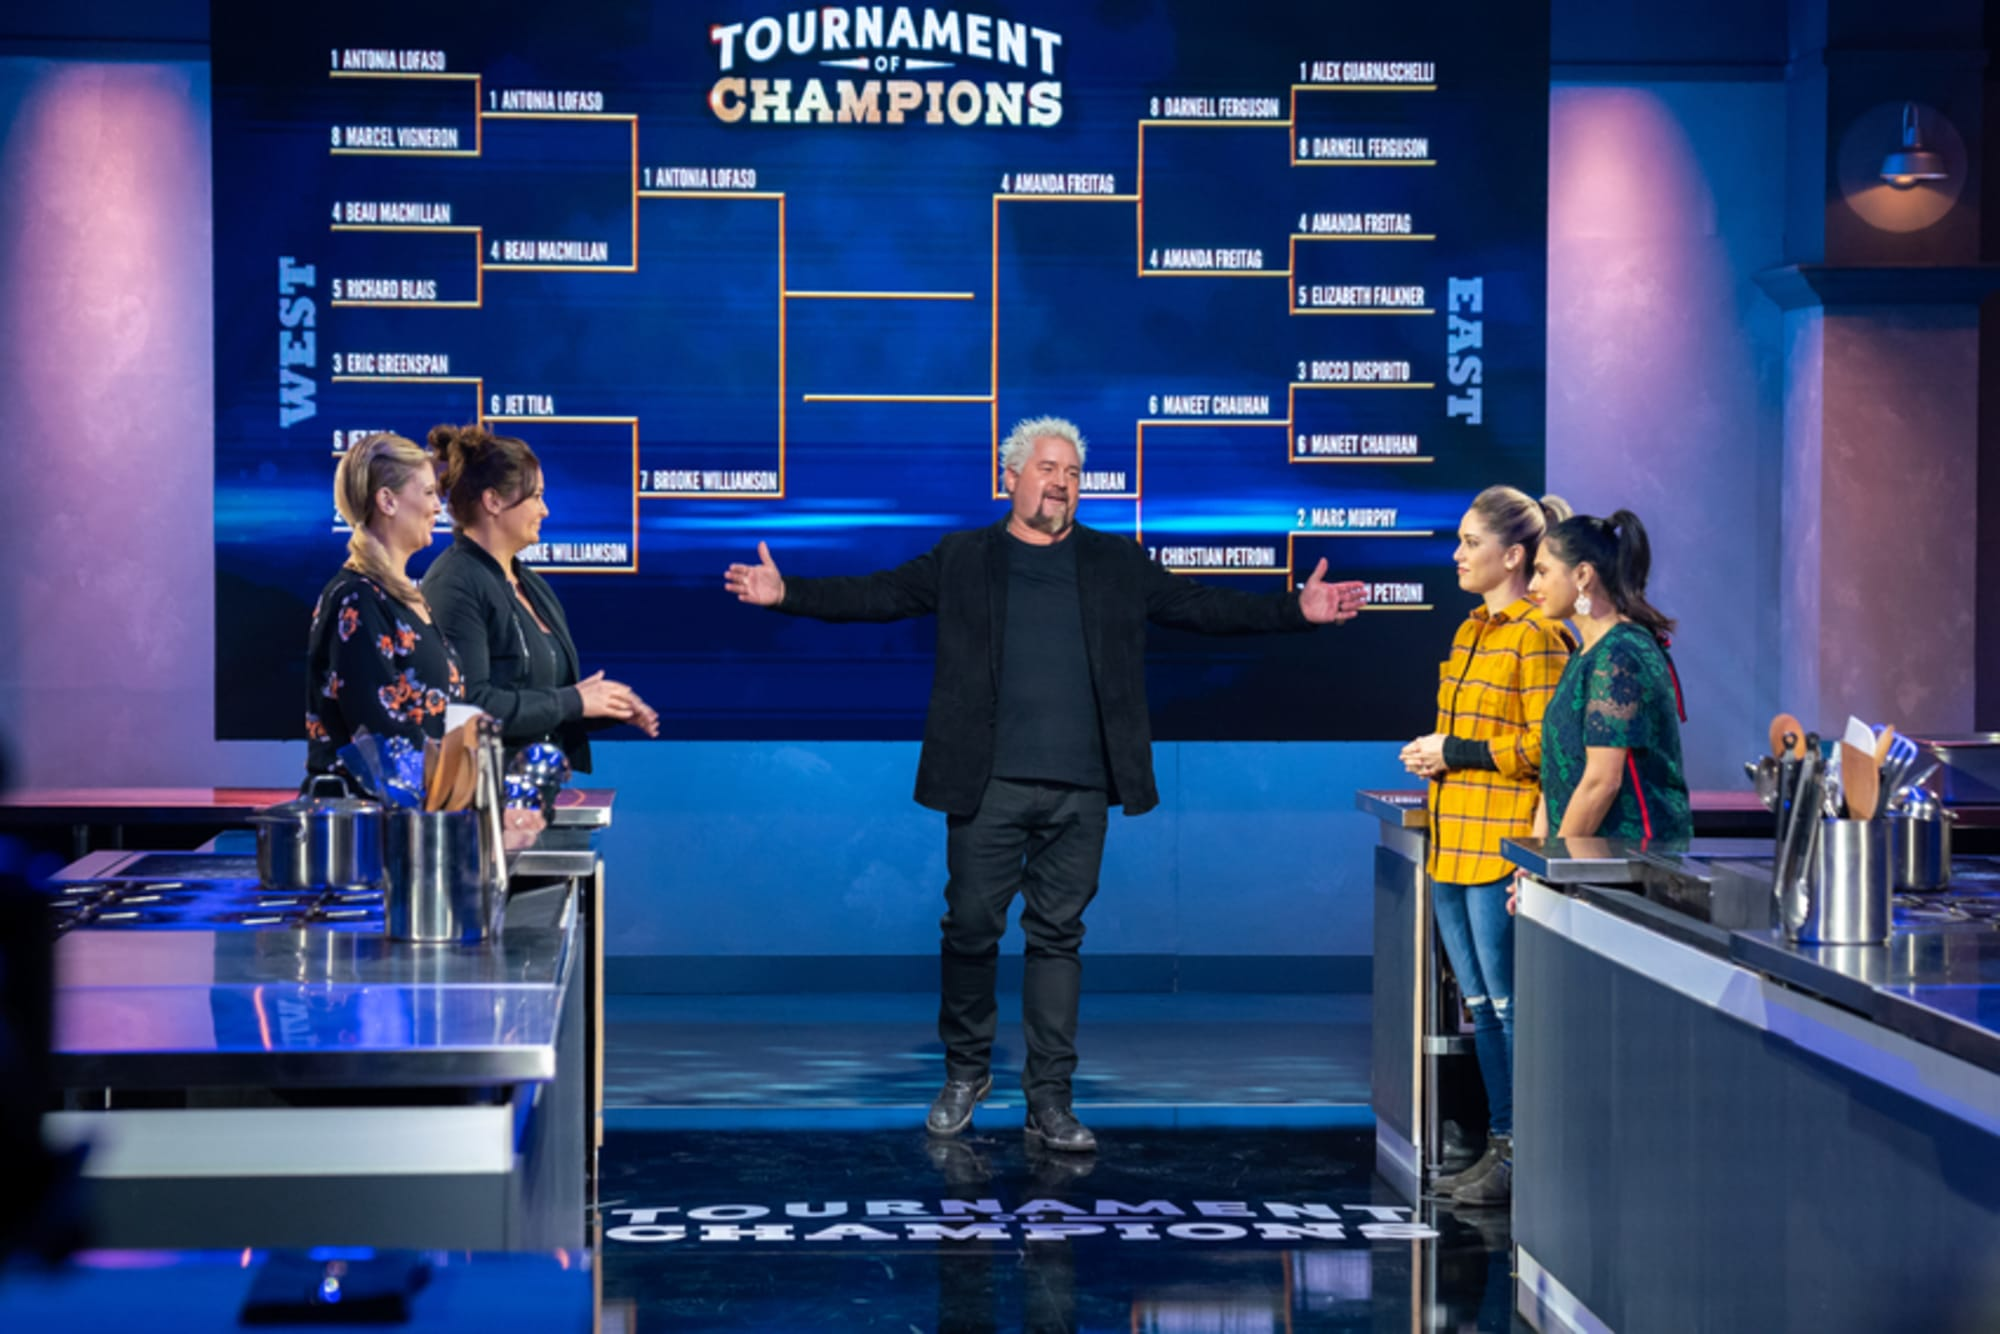 tournament of champions winner did you predict the winning chef tournament of champions winner did you